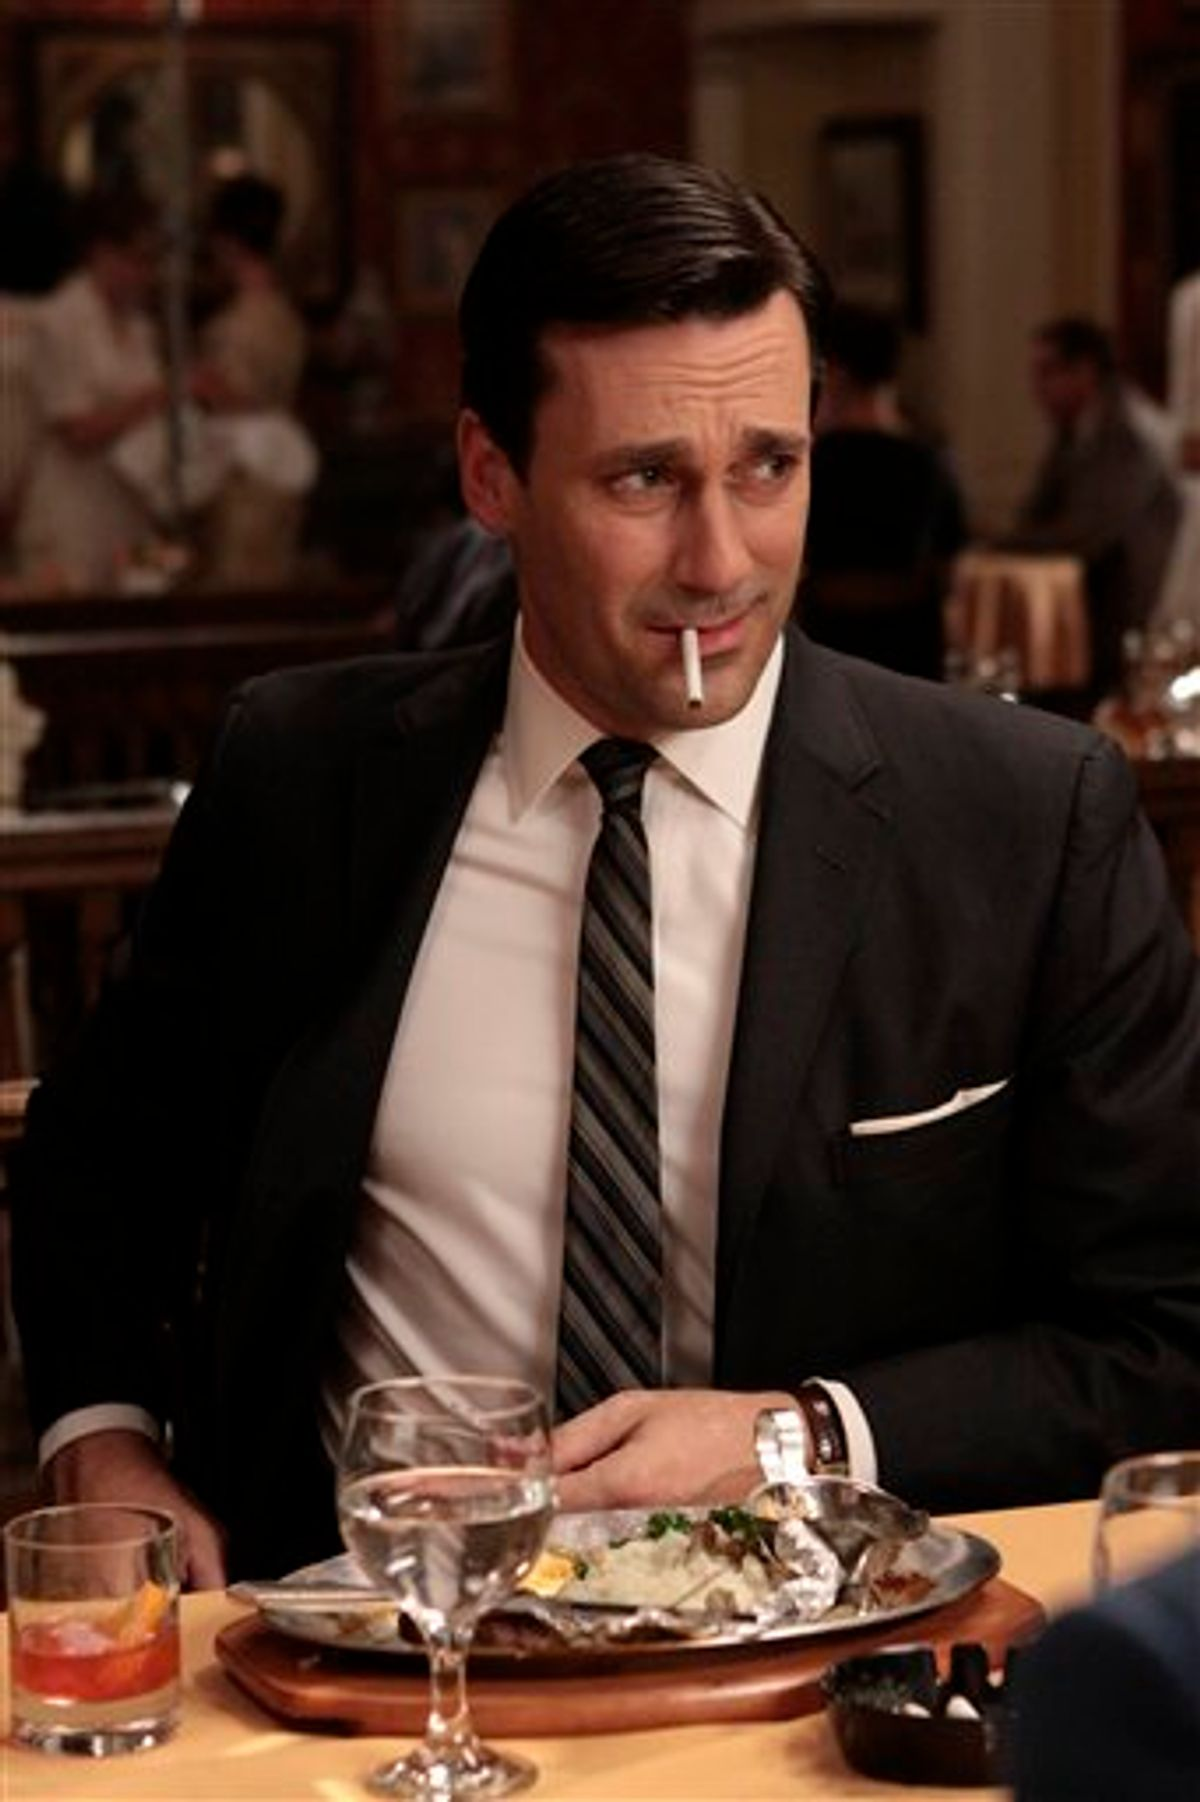 """In this publicity image released by AMC, Jon Hamm portrays Don Draper in the AMC series, """"Mad Men."""" The series was nominated for an Emmy for best drama series, and Jon Hamm was nominated for best actor in a drama series on Thursday, July 14, 2011. The Emmy awards will be presented on Sept. 18. (AP Photo/AMC)     (AP)"""